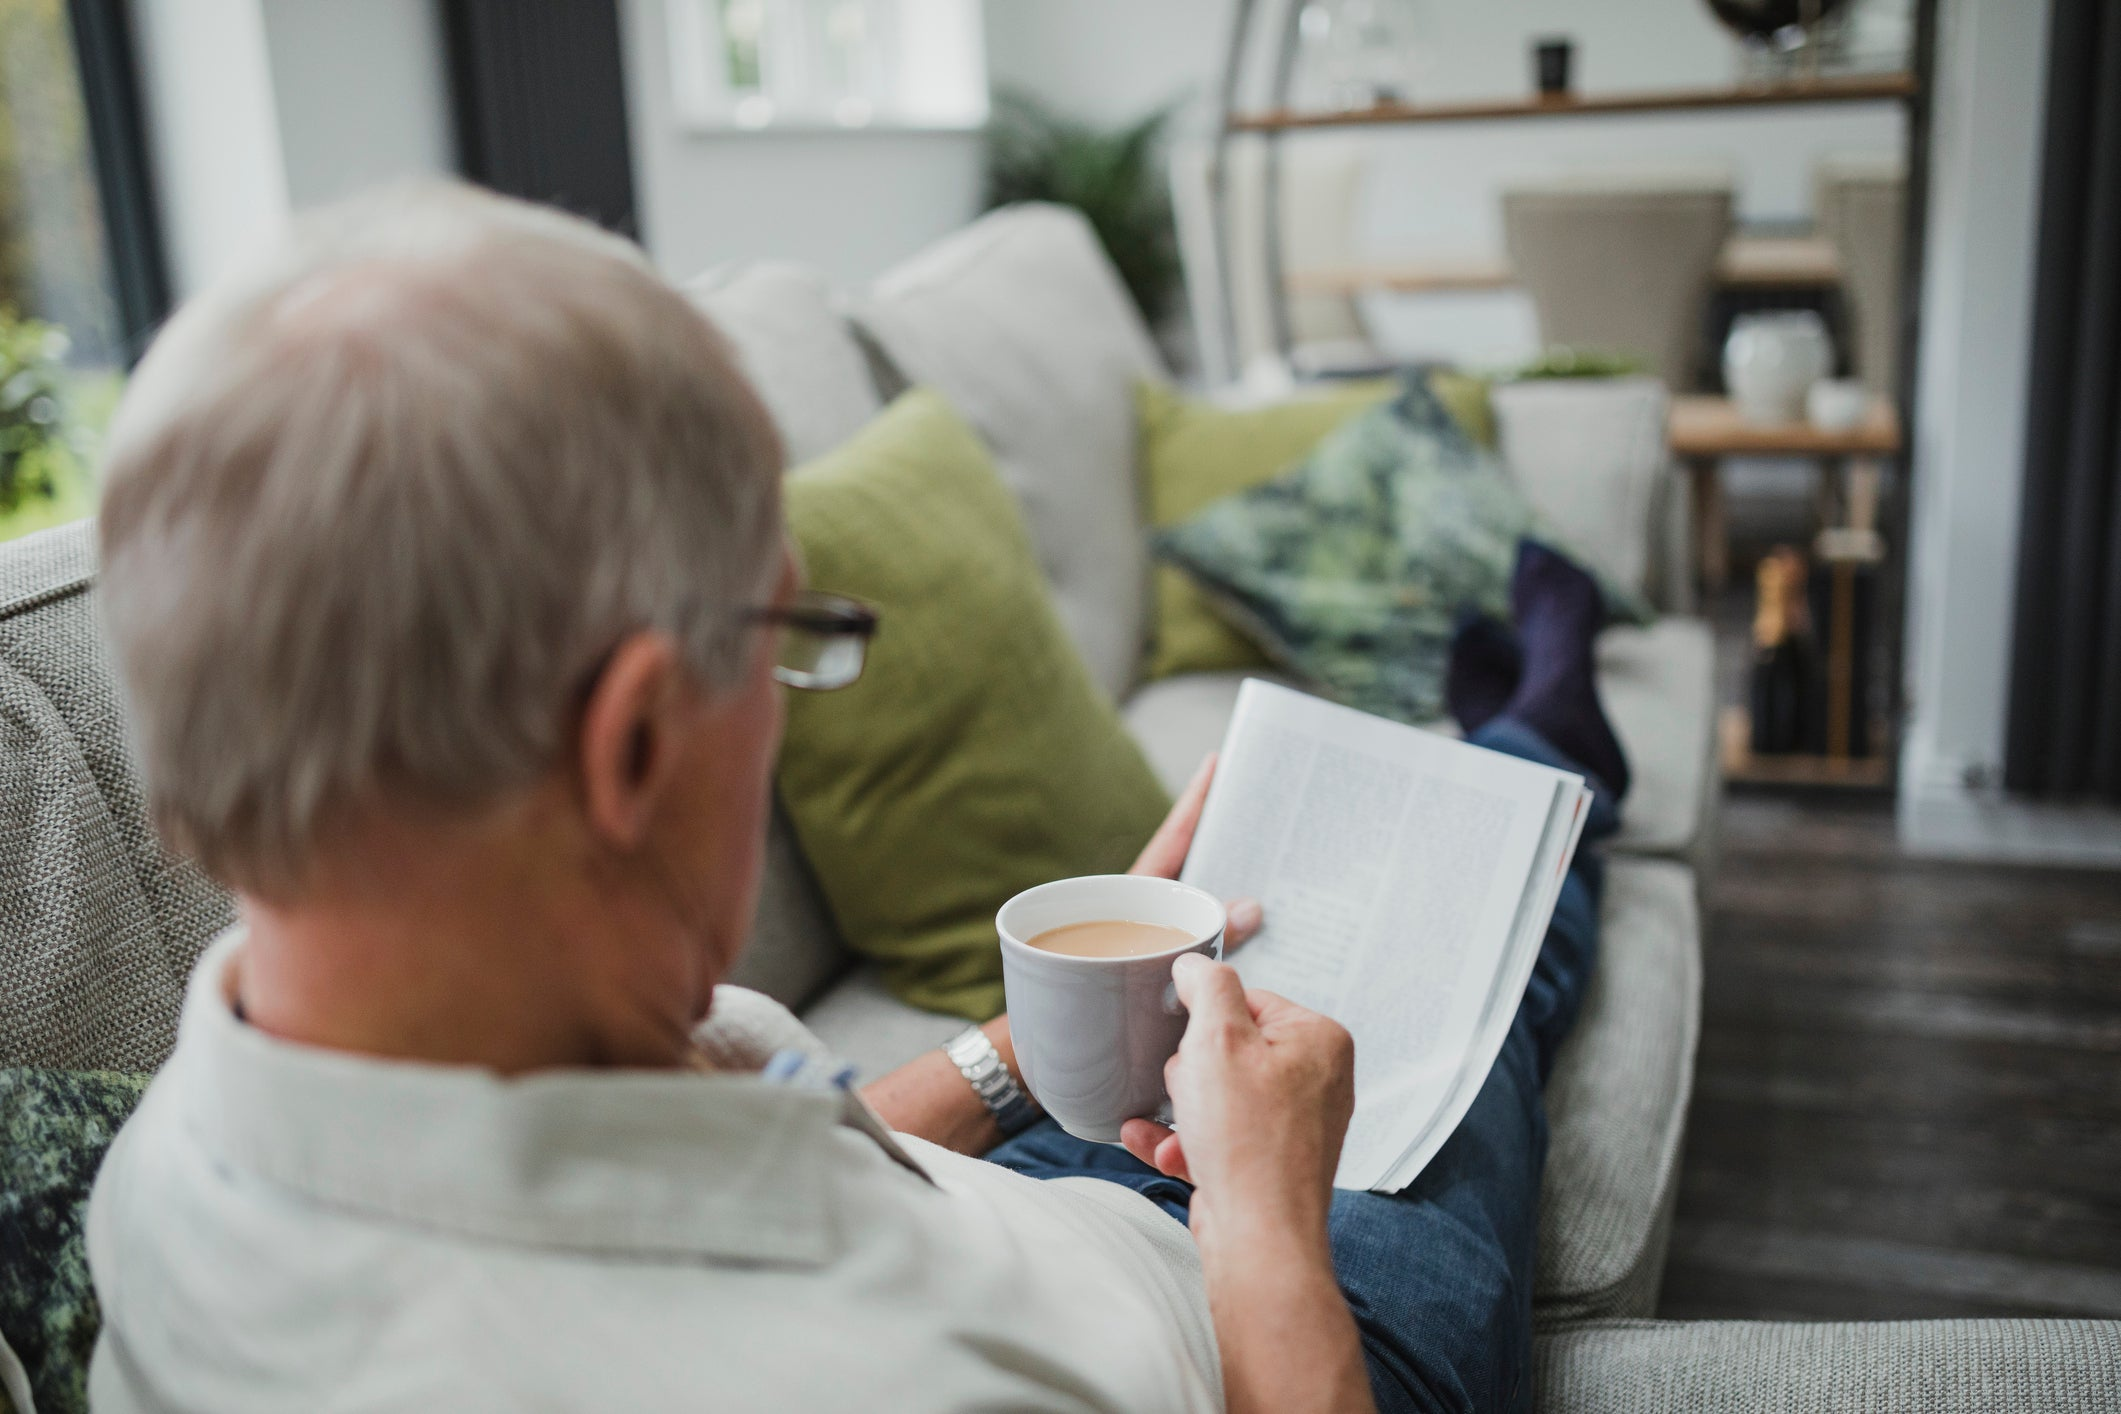 3 Reasons You May Not Be Ready for Retirement | The Motley Fool